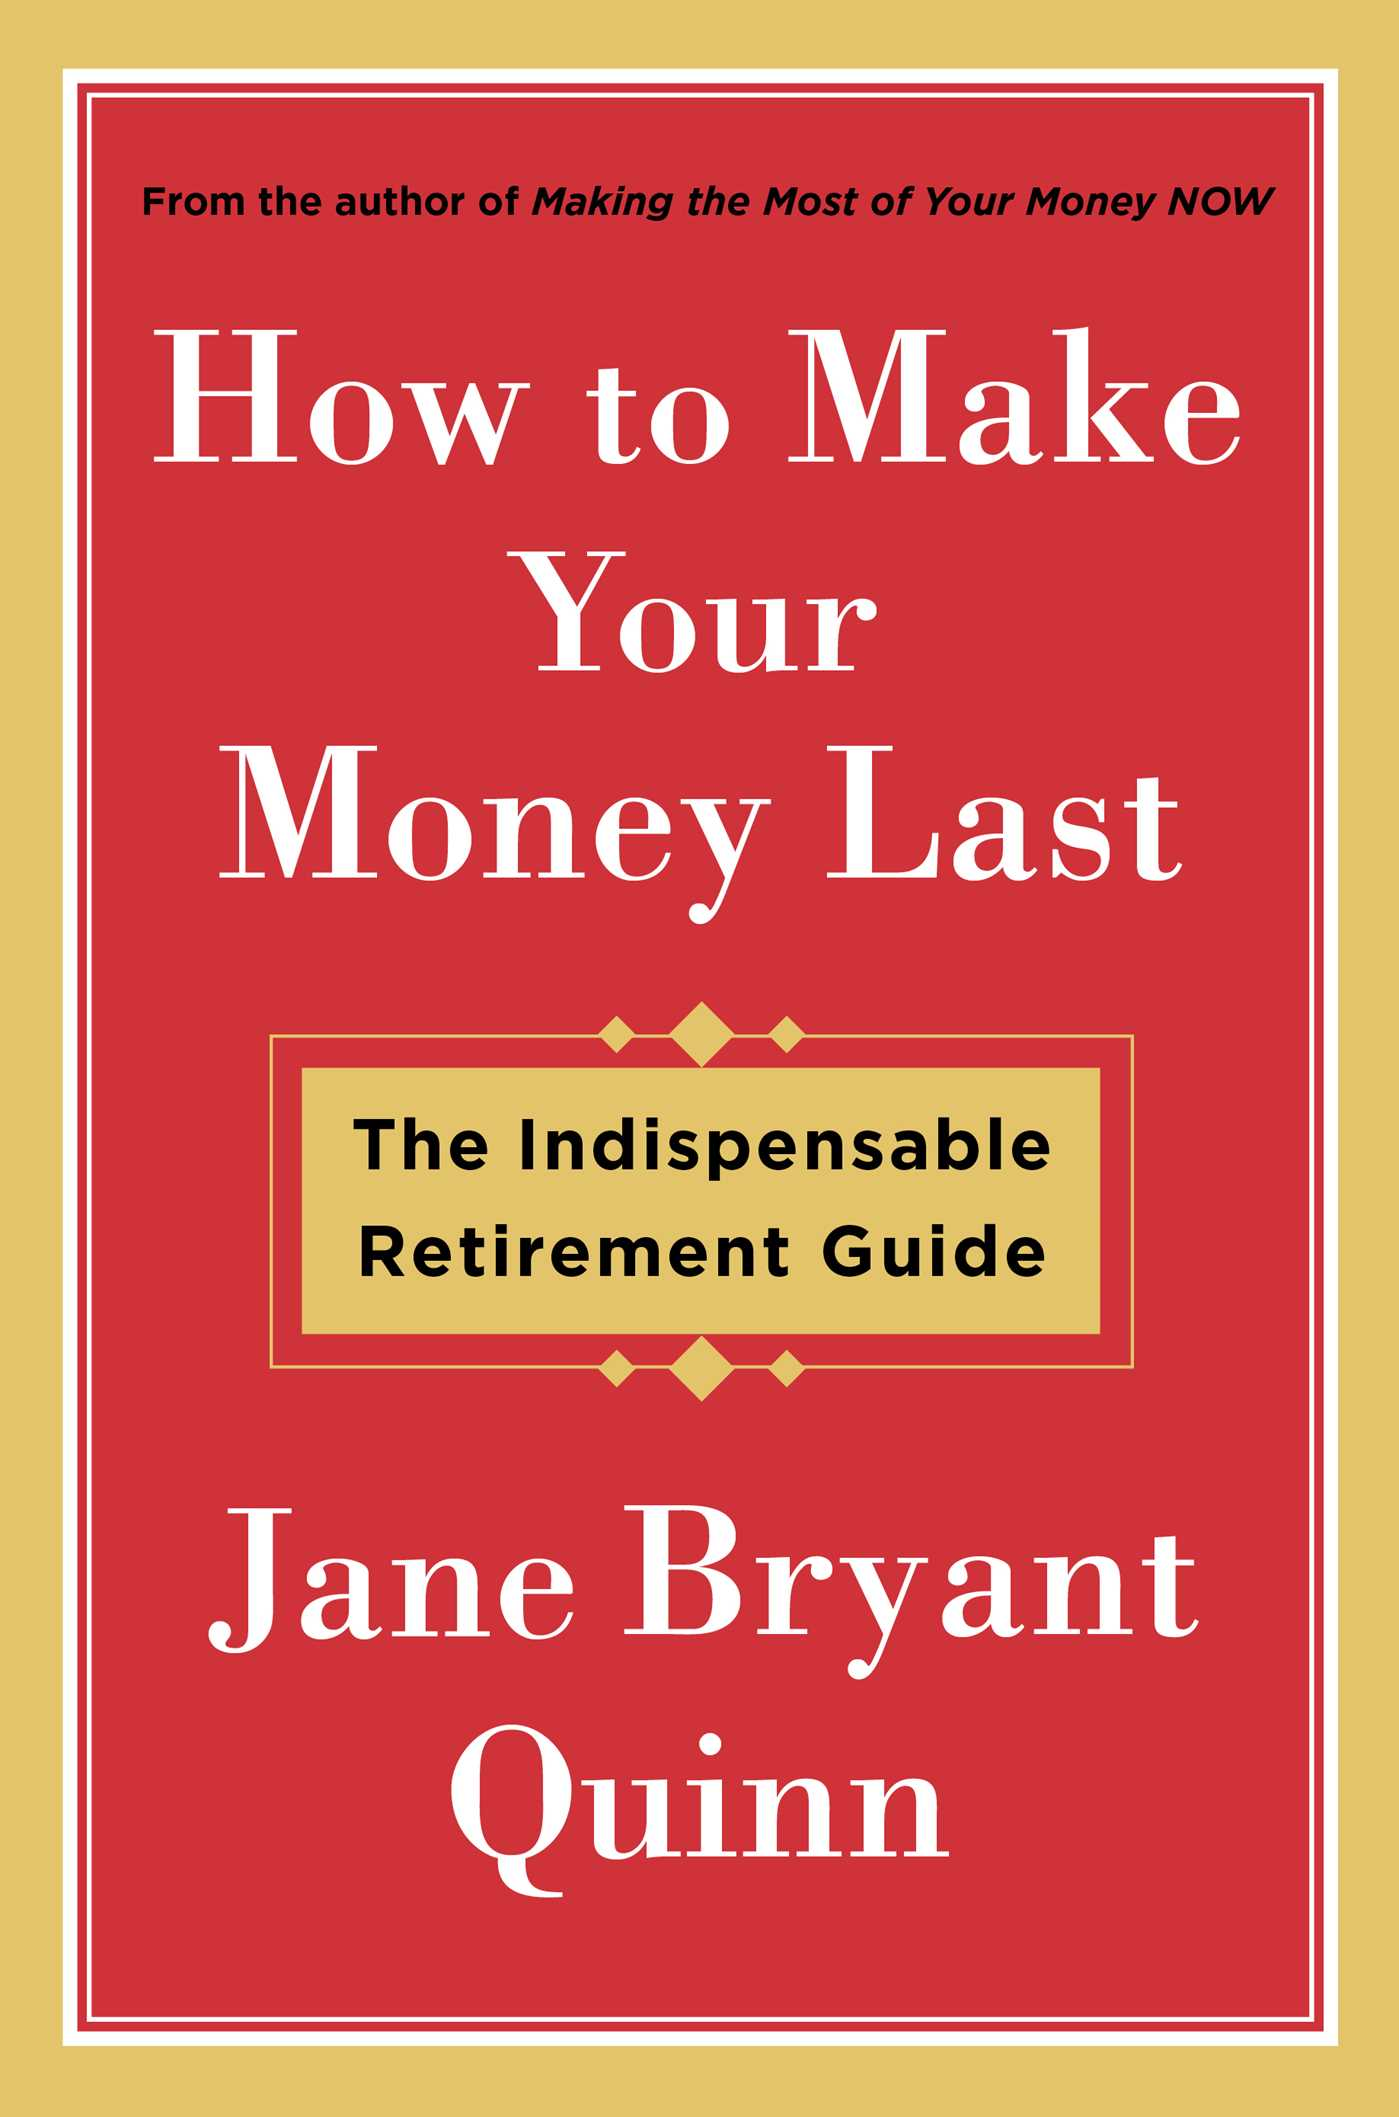 How to make your money last 9781476743769 hr